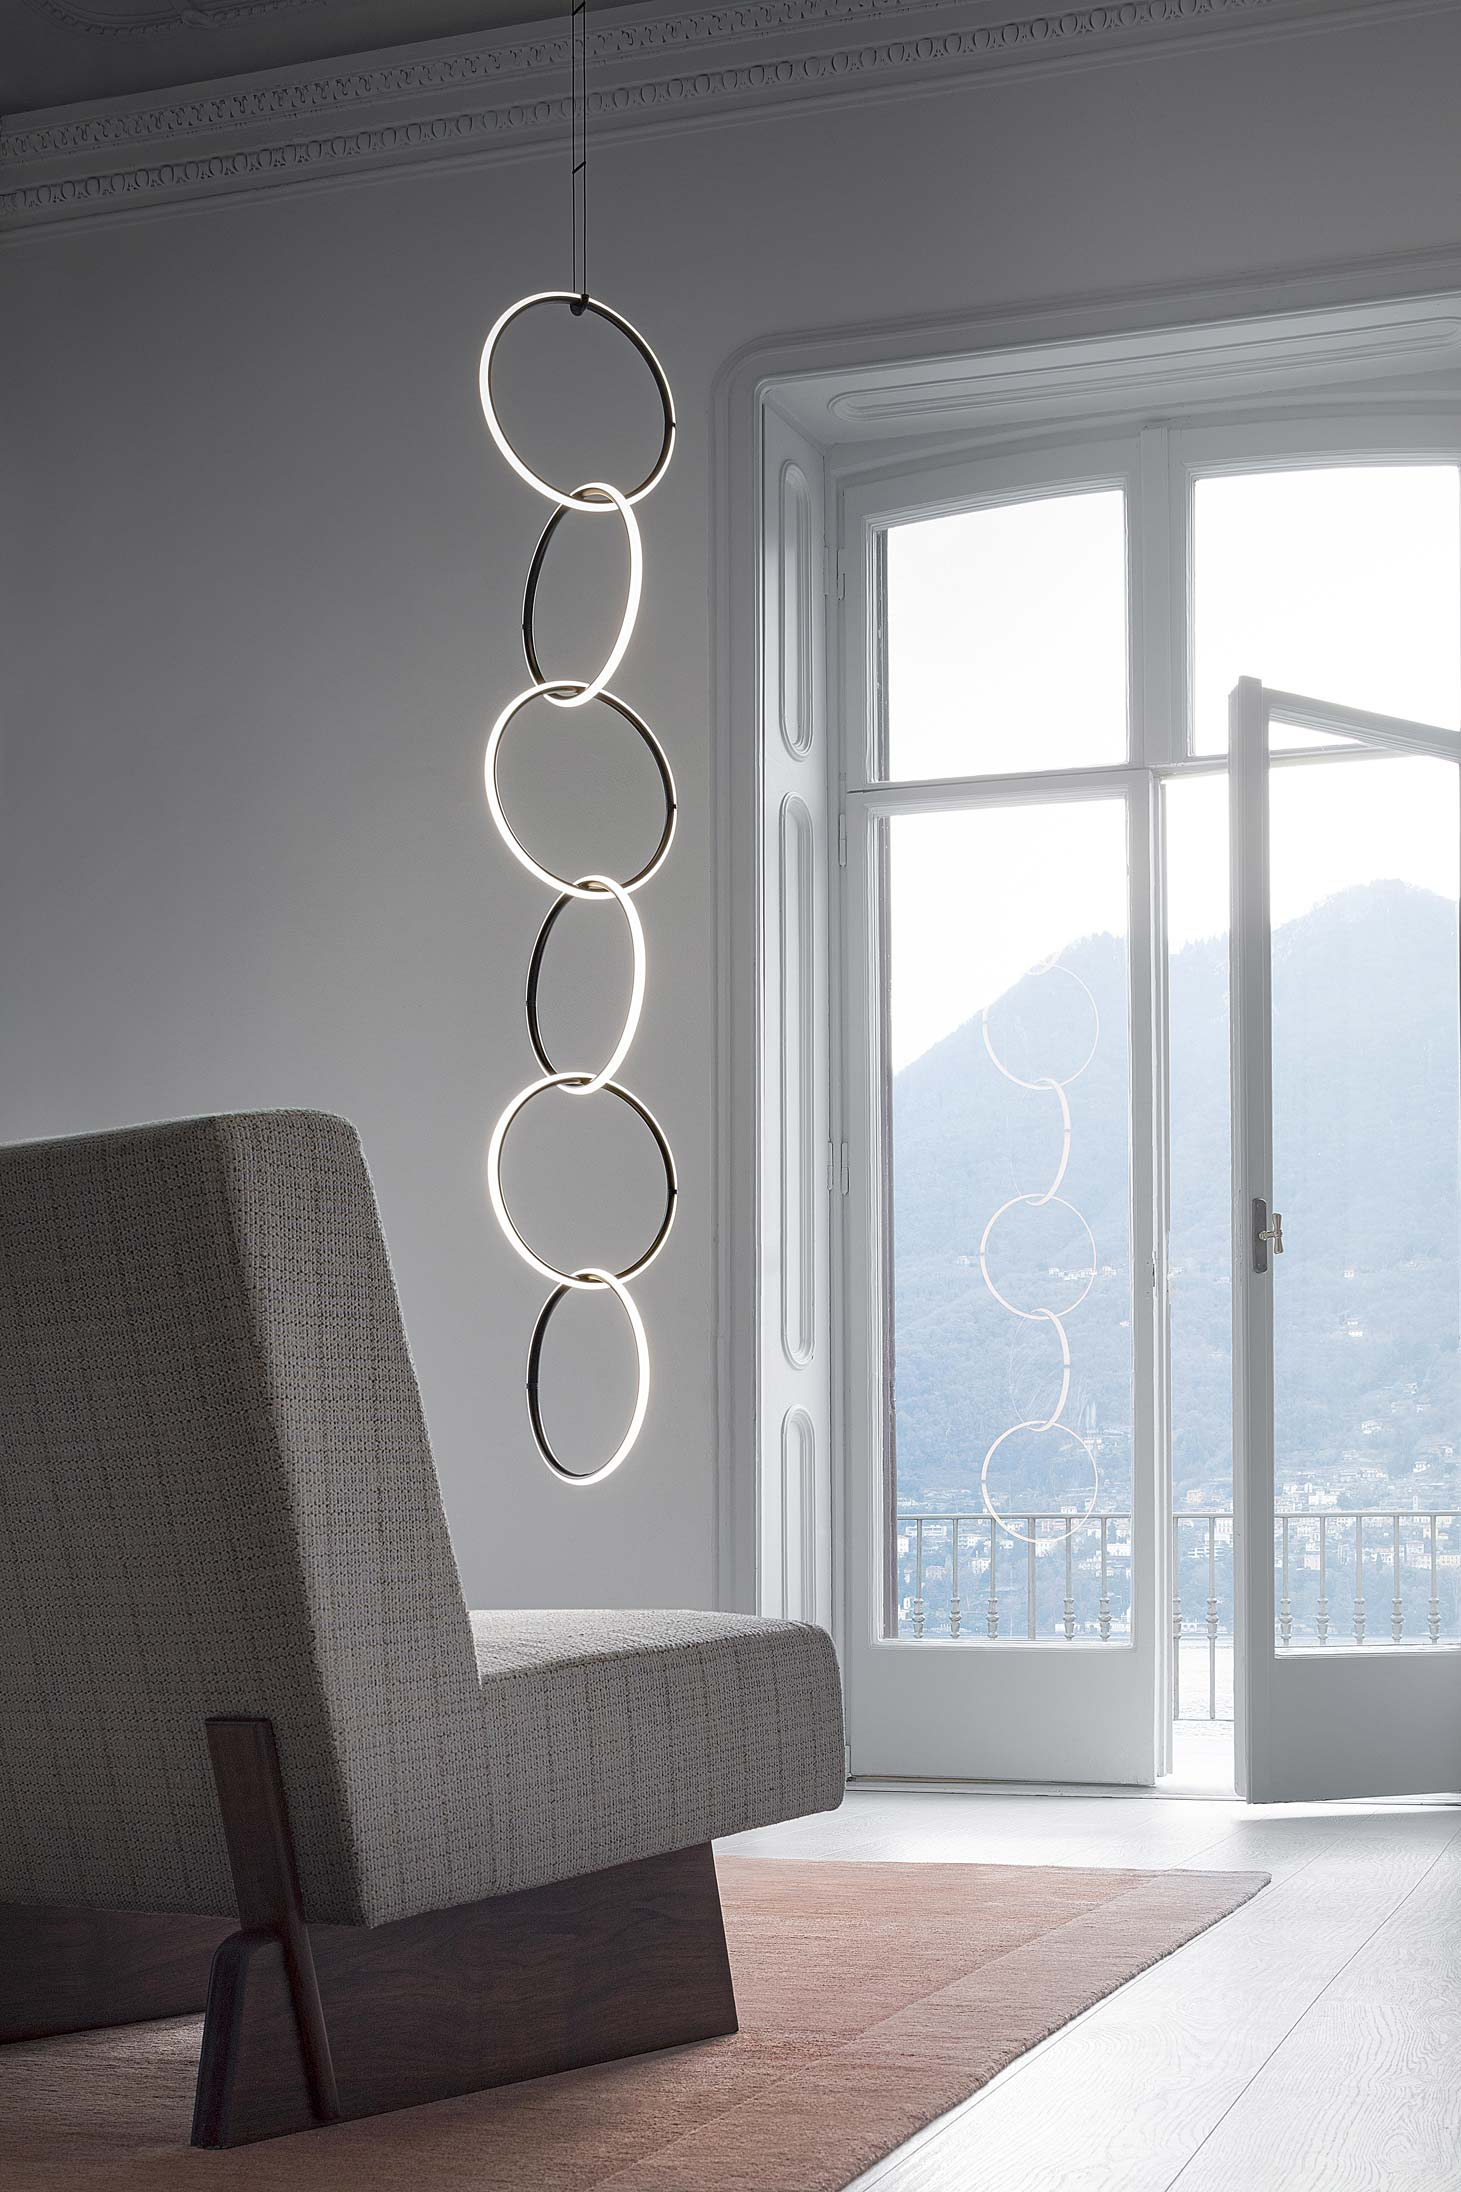 Lighting Design Michael Anastassiades Unveils Modular